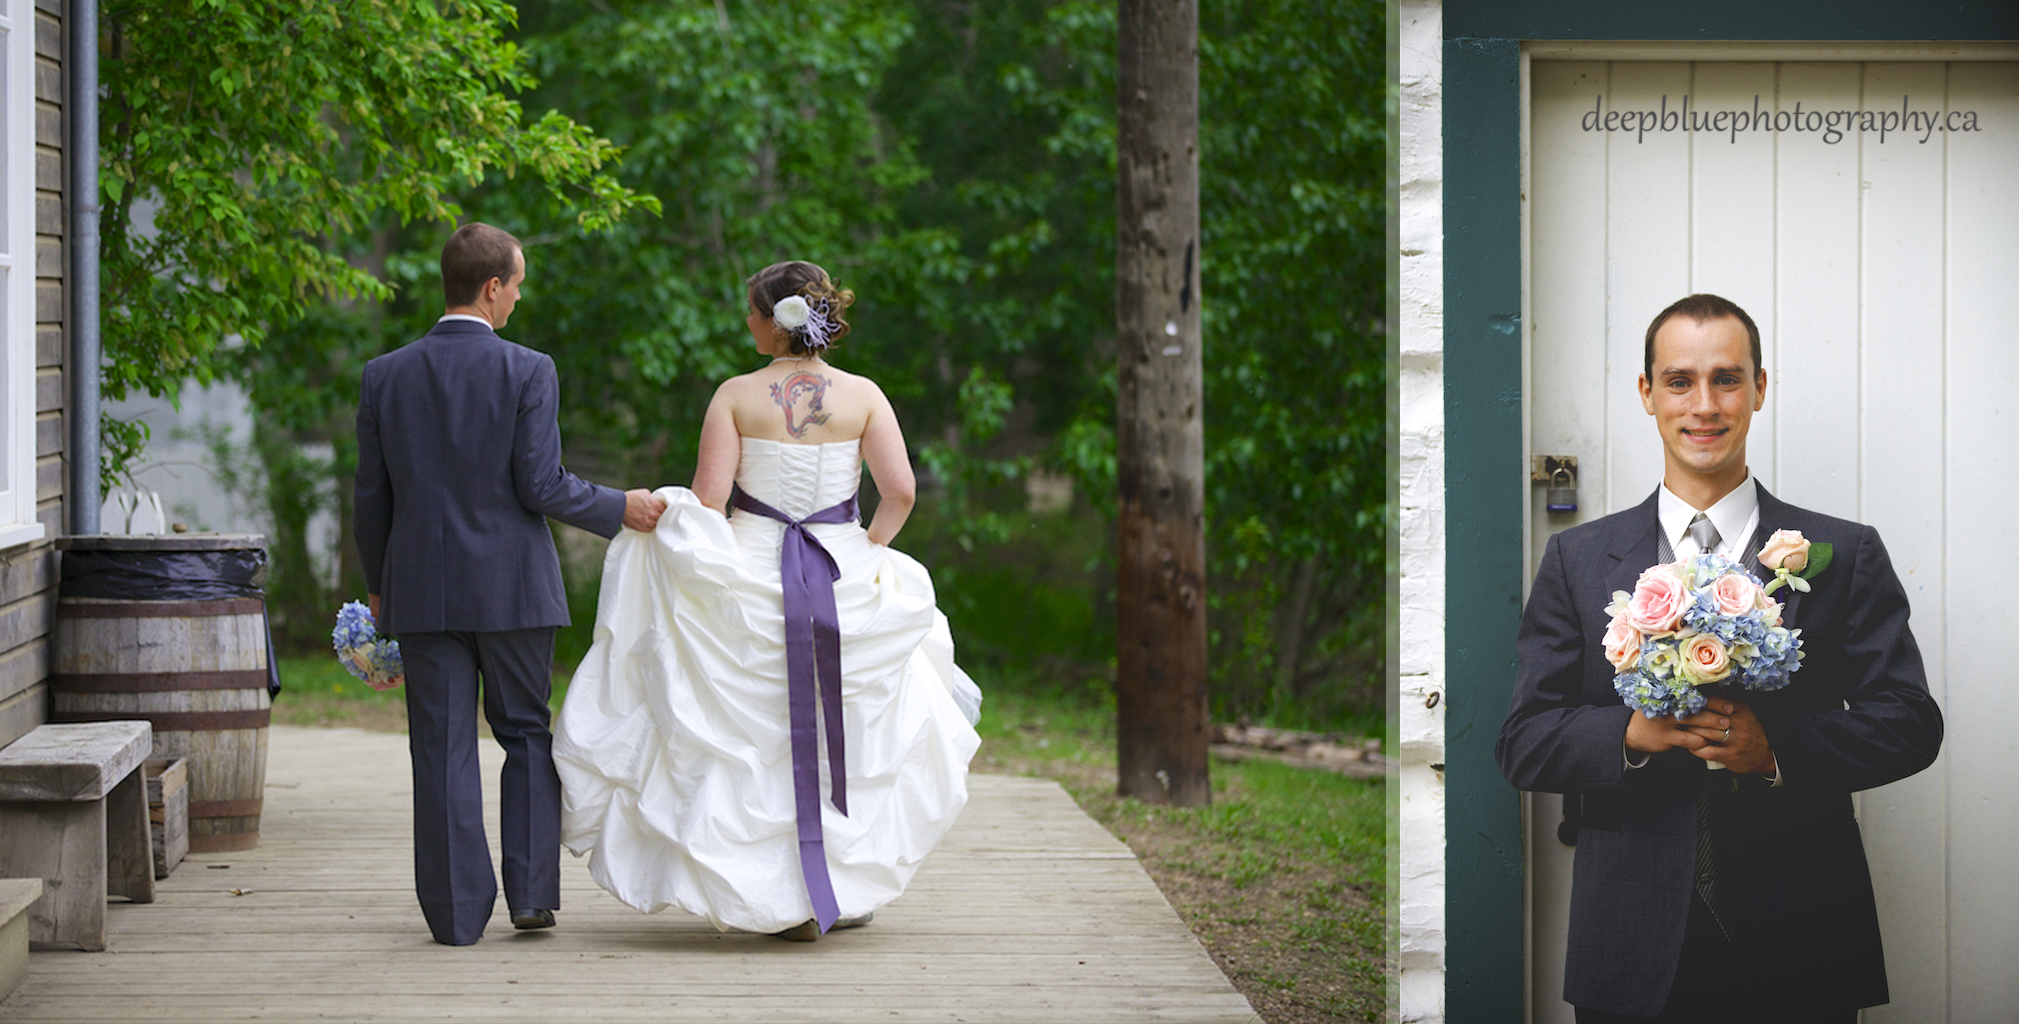 Groom with Flowers and Holding the Dress